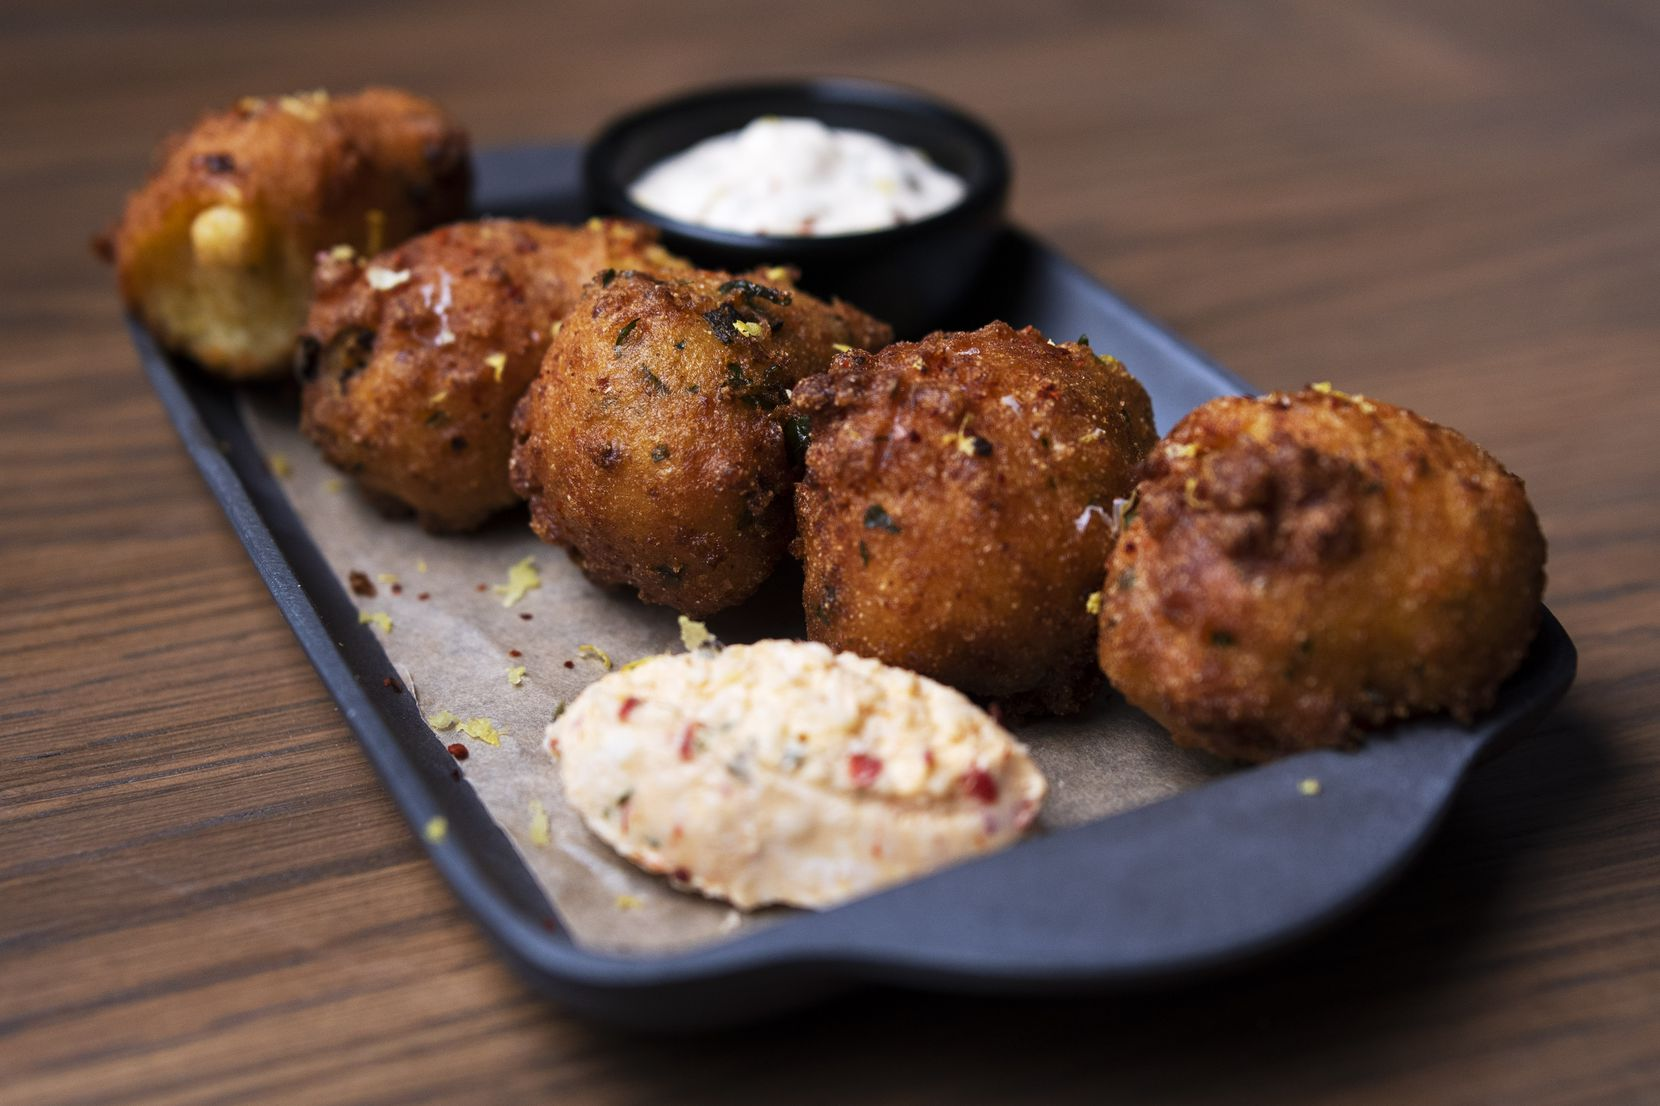 East Texas hush puppies with charred okra, pimento cheese and cajun remoulade sauce are on the menu at Elm & Good restaurant in Deep Ellum.